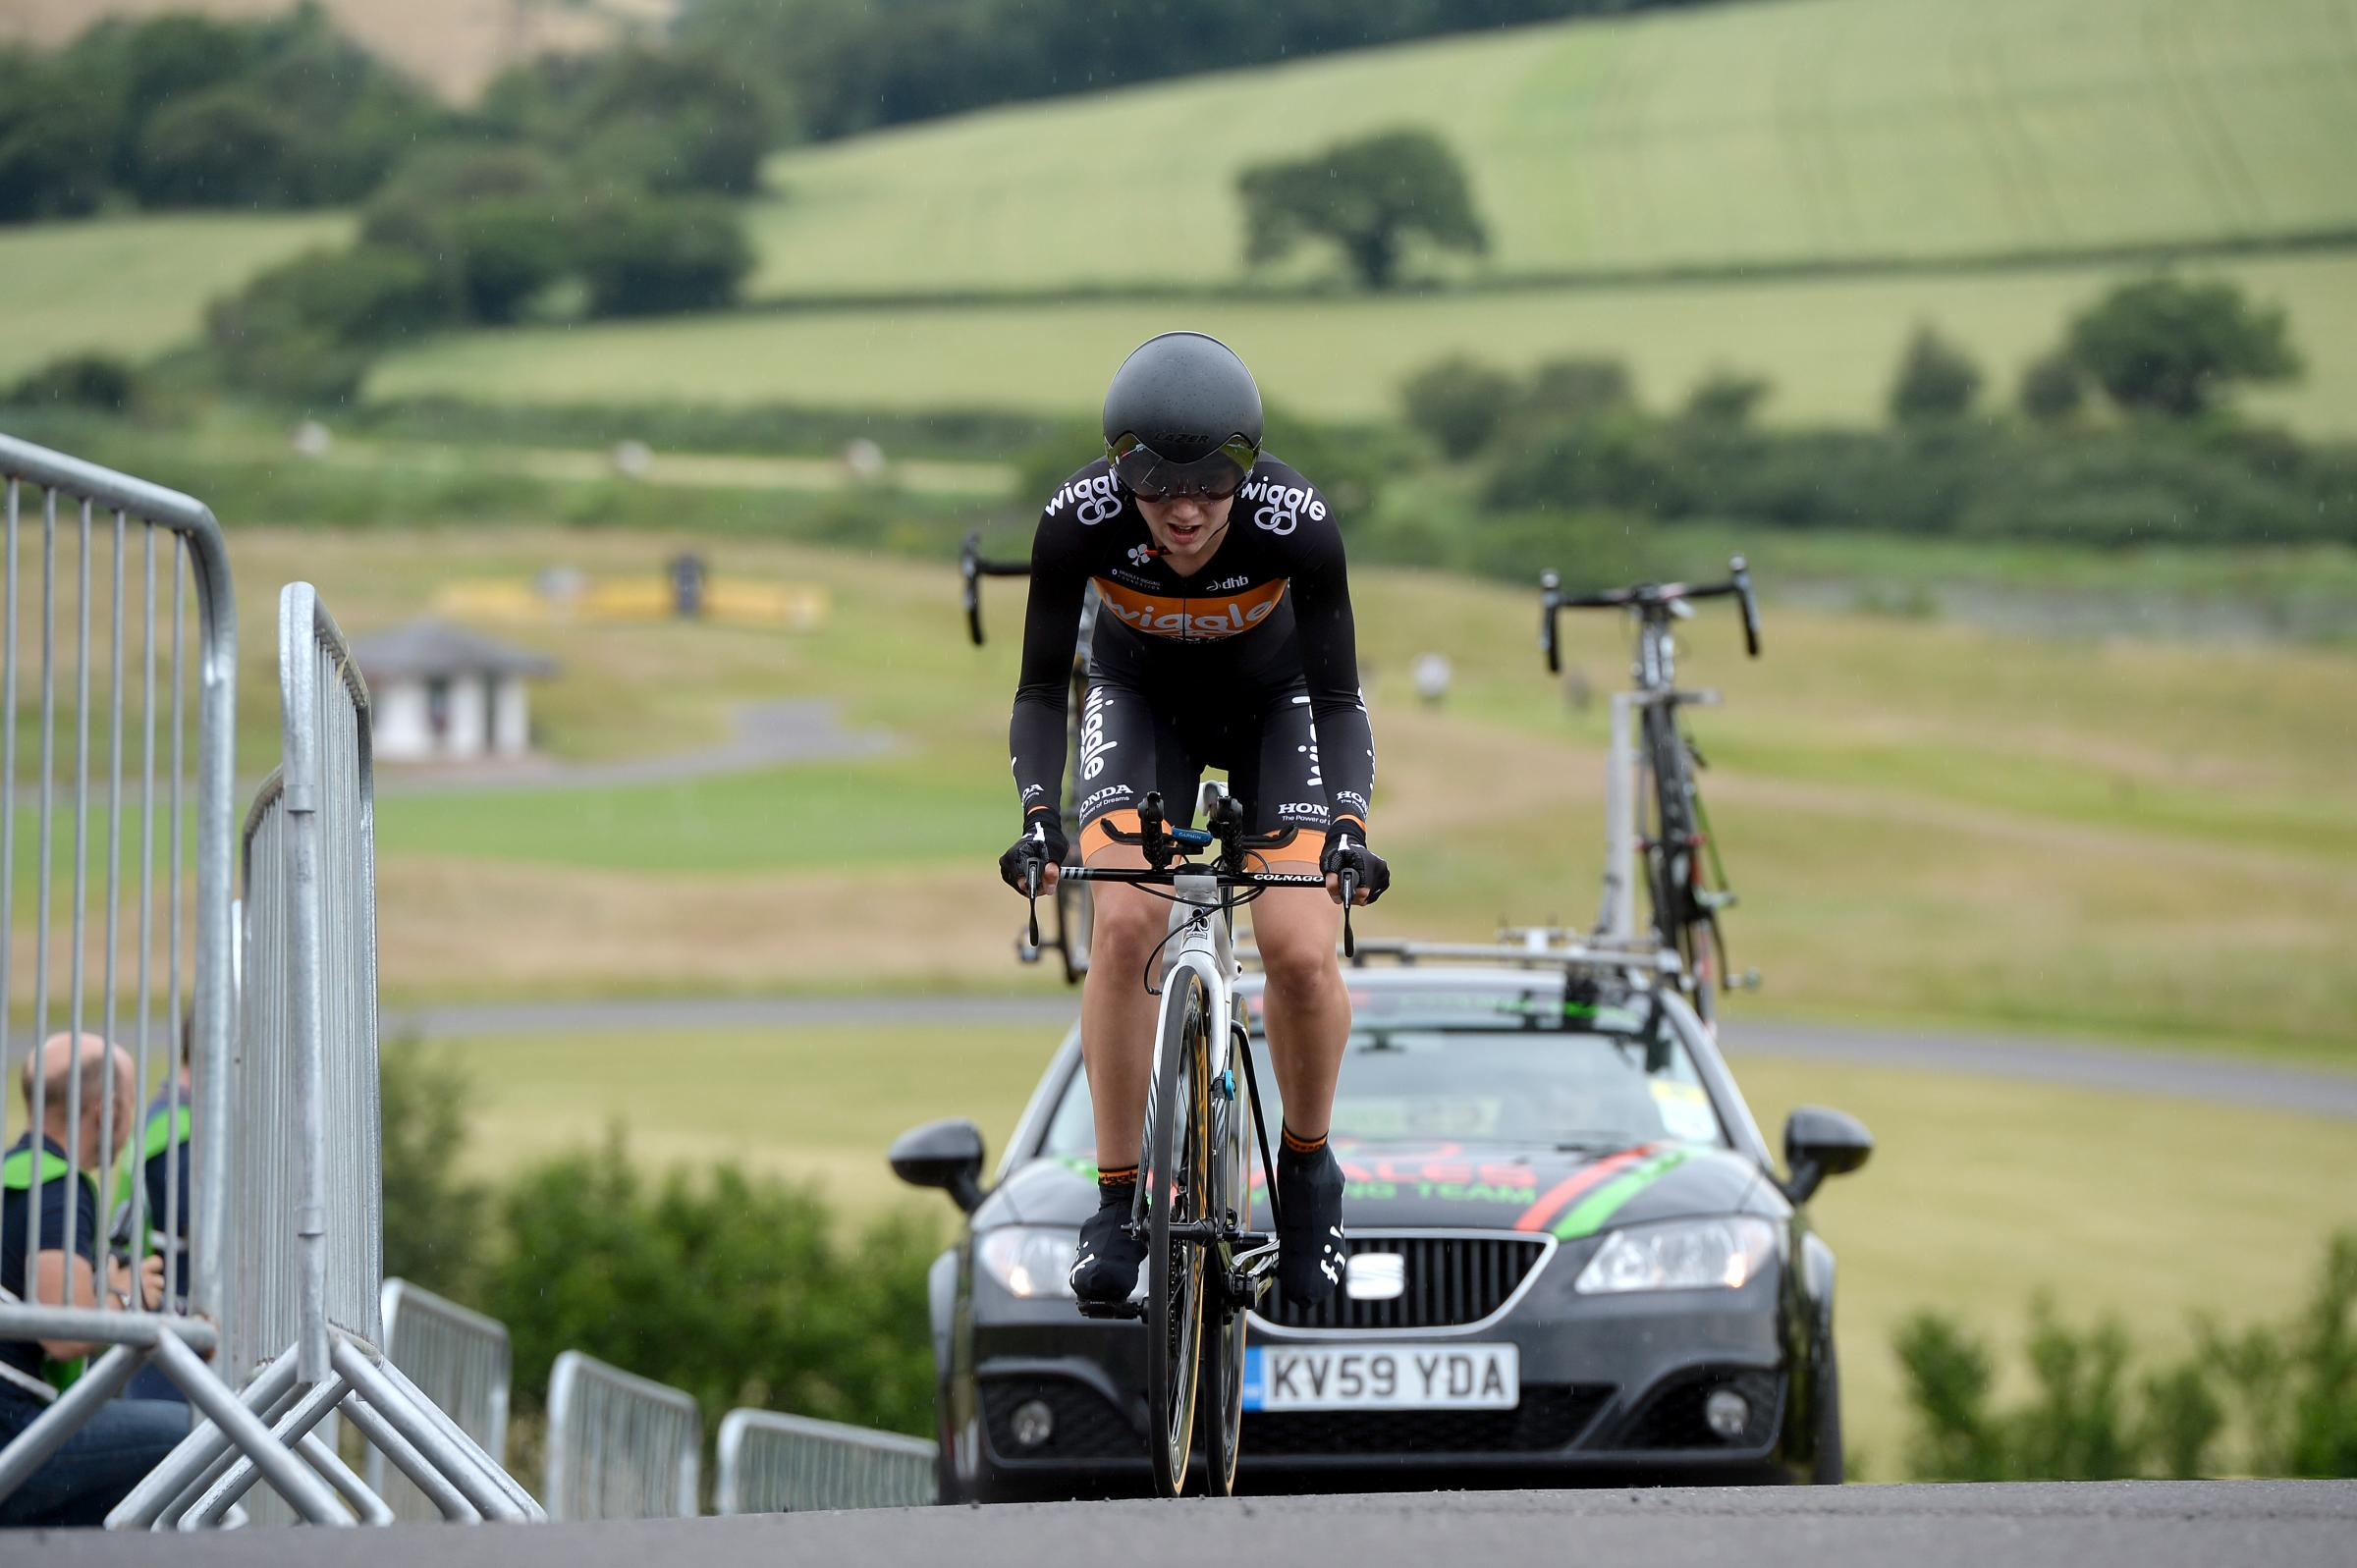 BIG CLIMB: Elinor Barker in action in the National Time Trial at the Celtic Manor on Friday, when she finsihed fourth